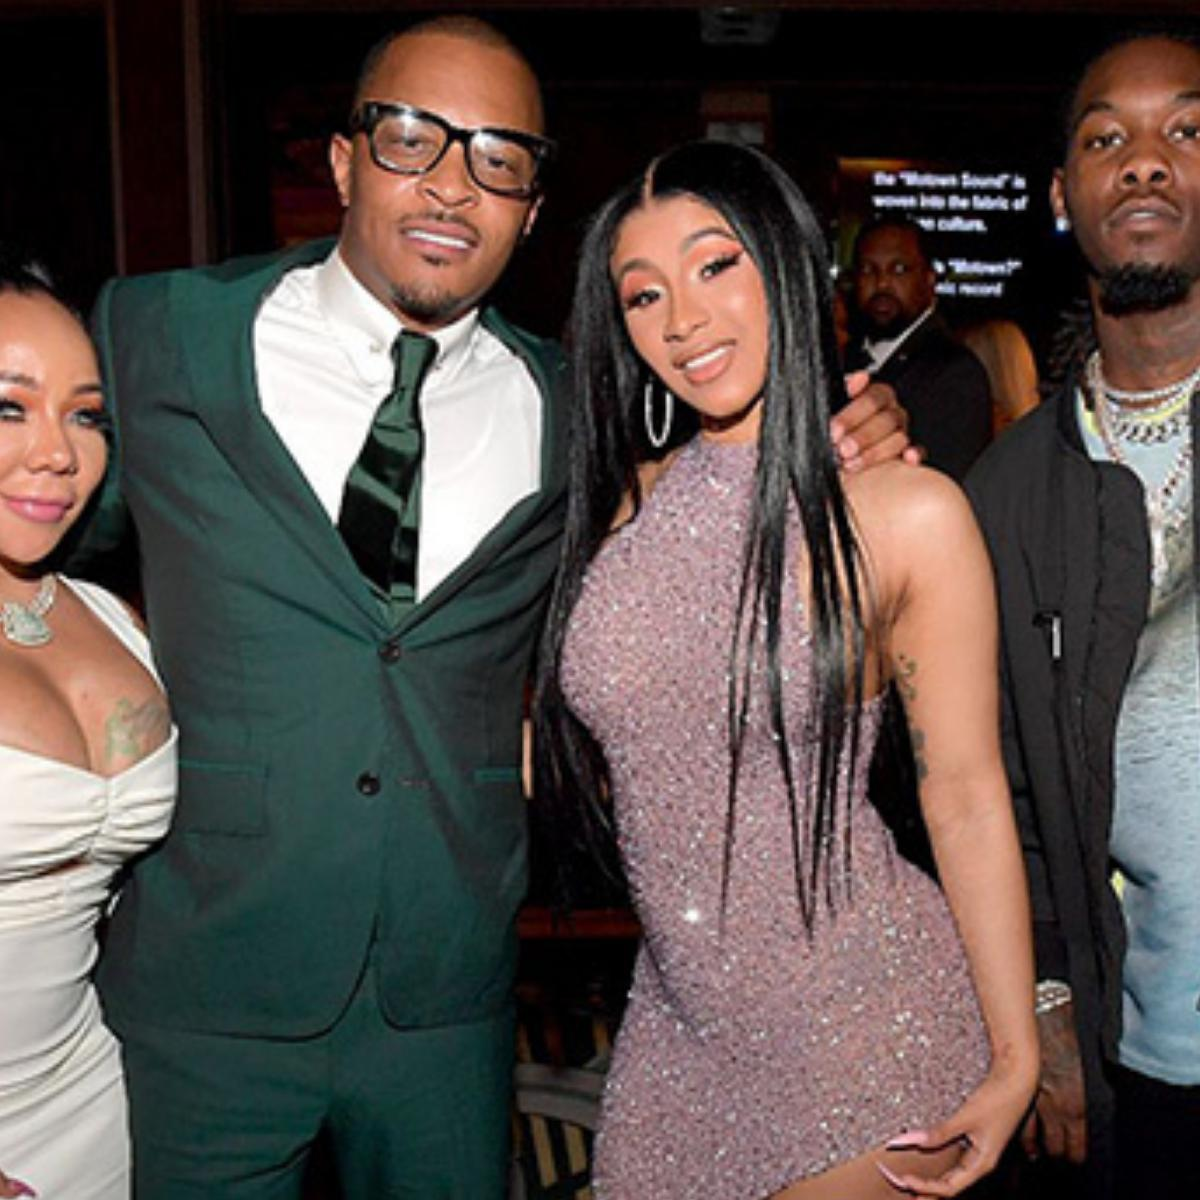 Photo Of T.I. And Tiny With Cardi B In Ghana